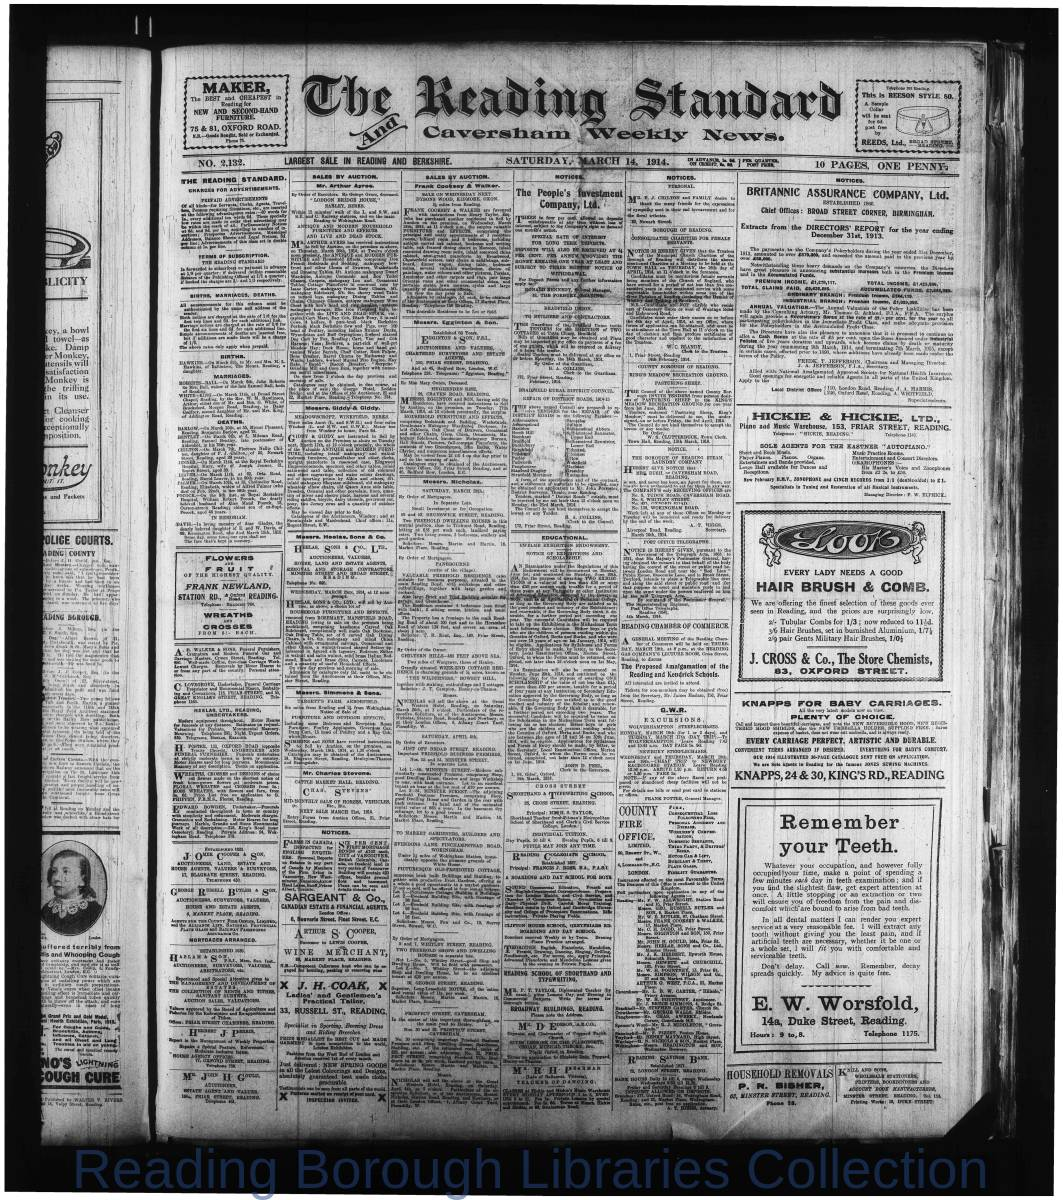 Reading Standard, Saturday, March 14, 1914. Pg 1